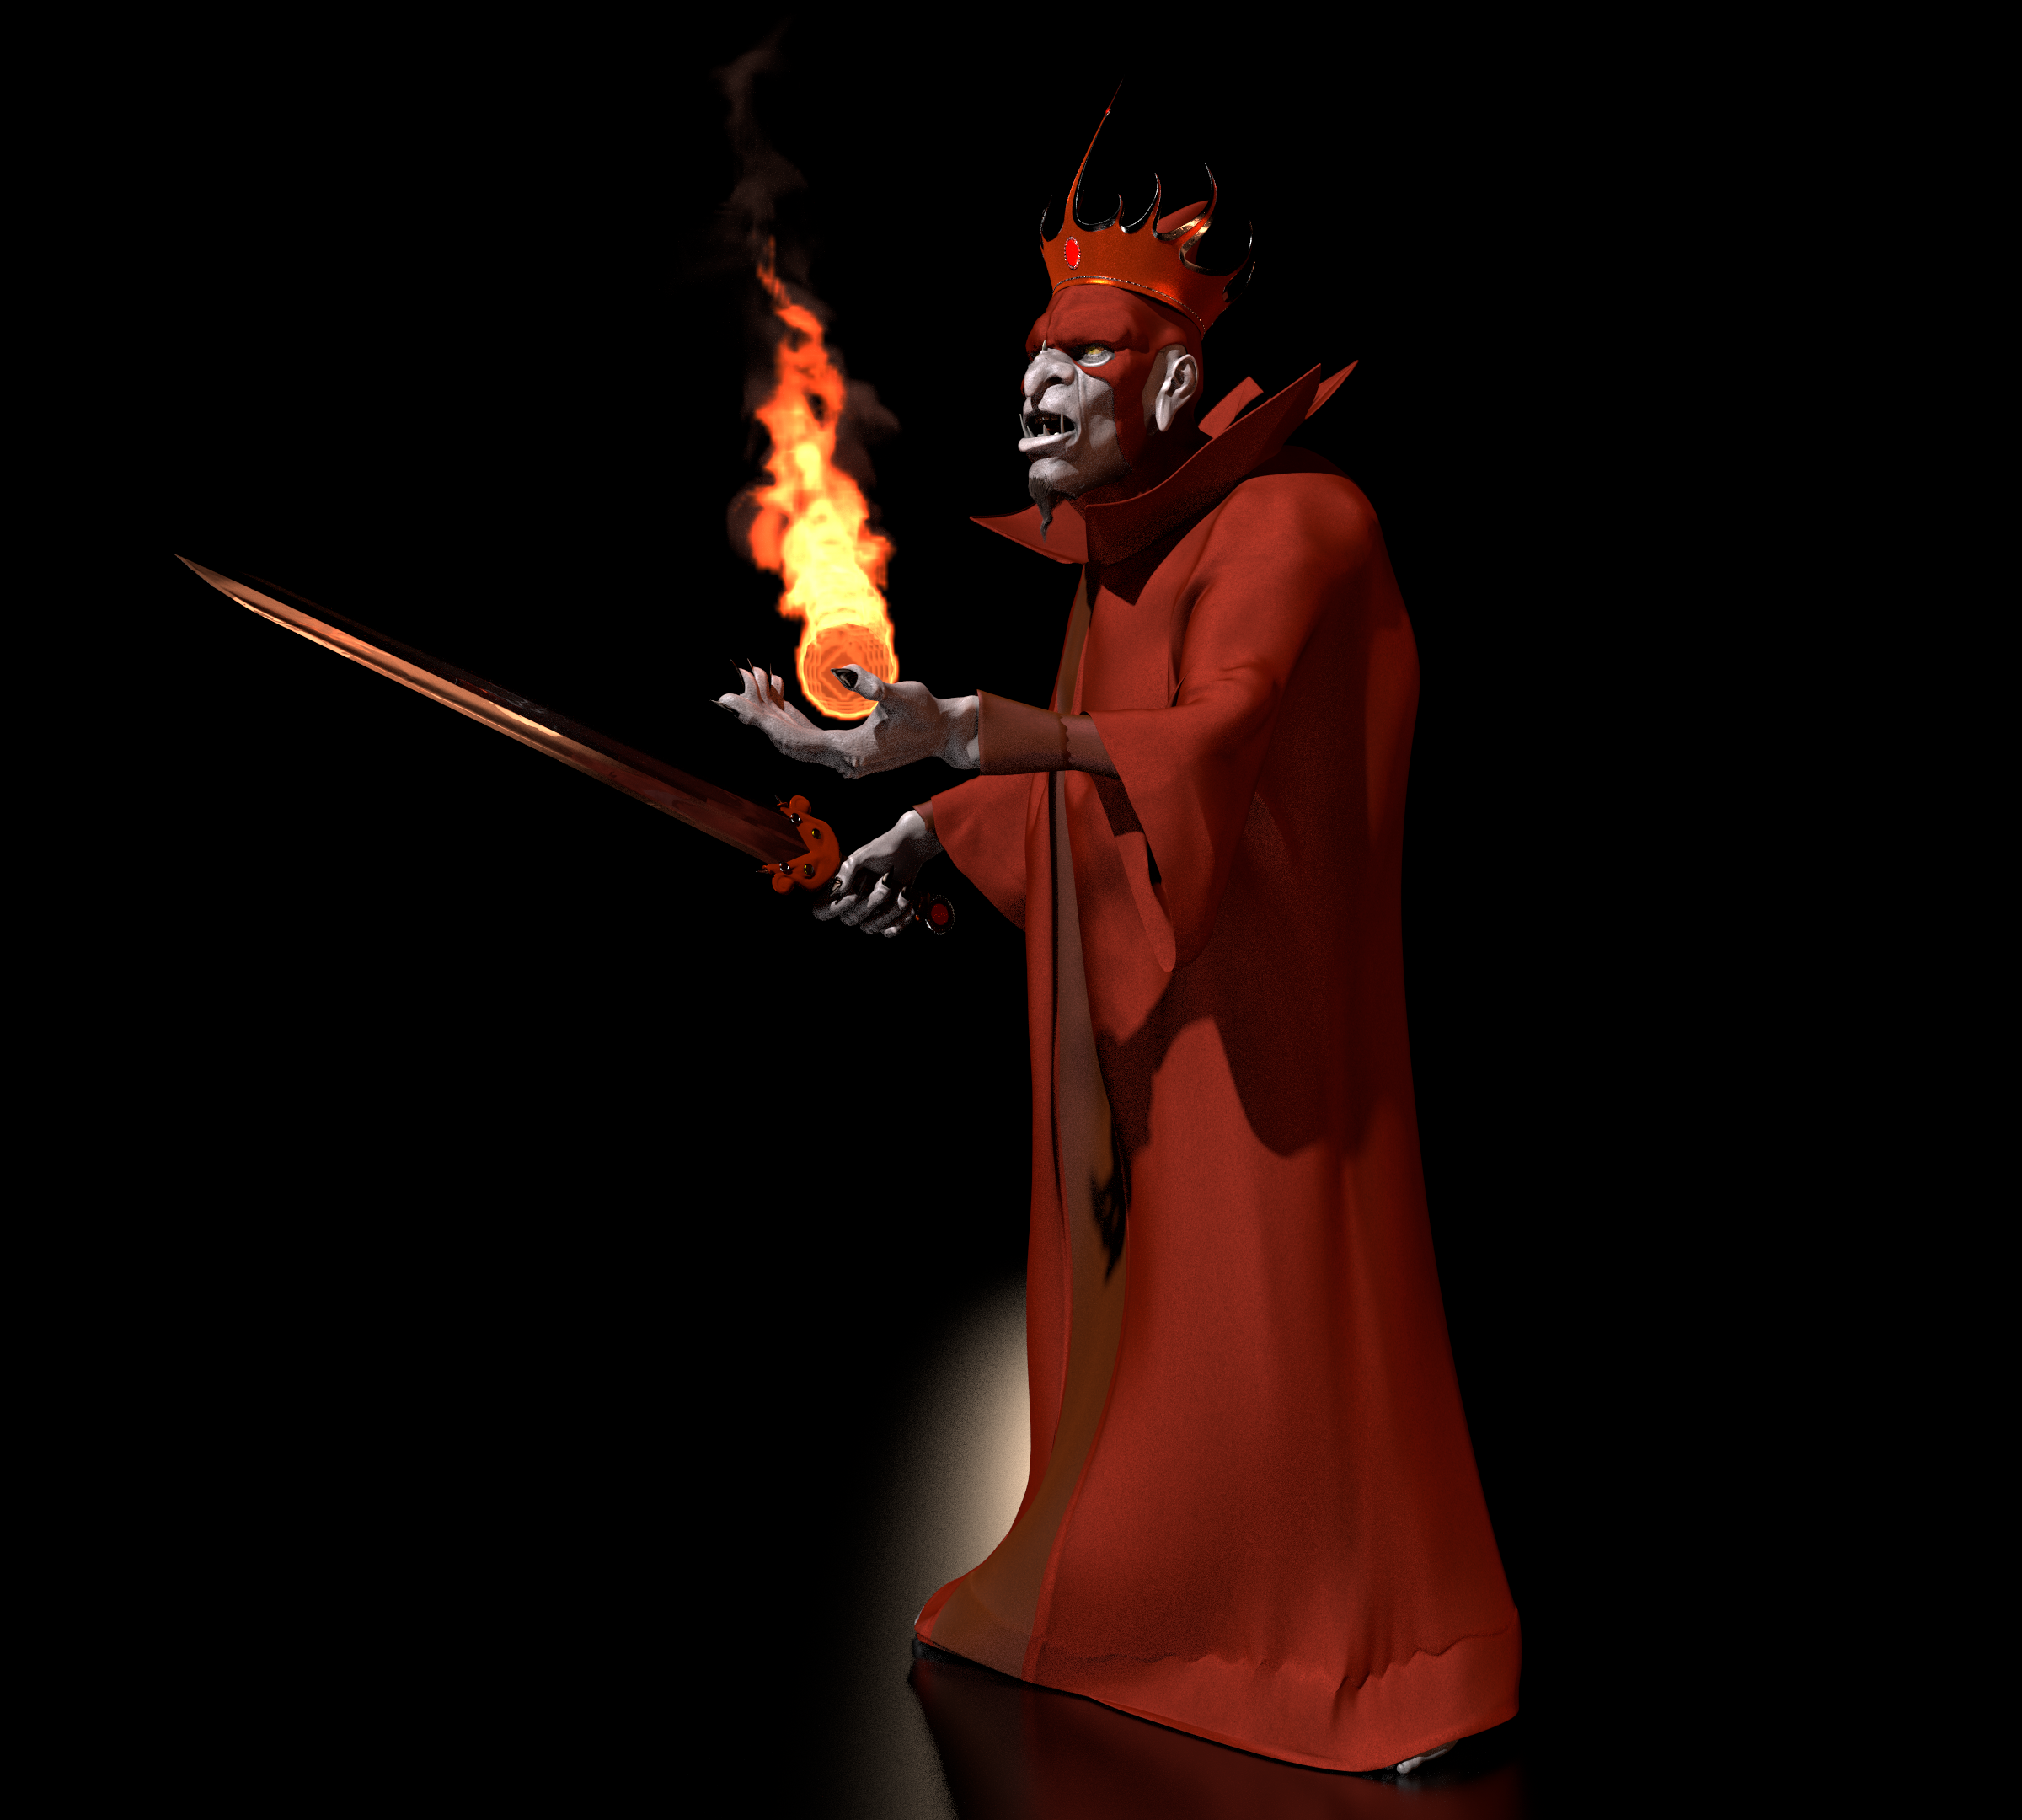 TFOD - Ommadon, The Red Wizard 2 by paulrich